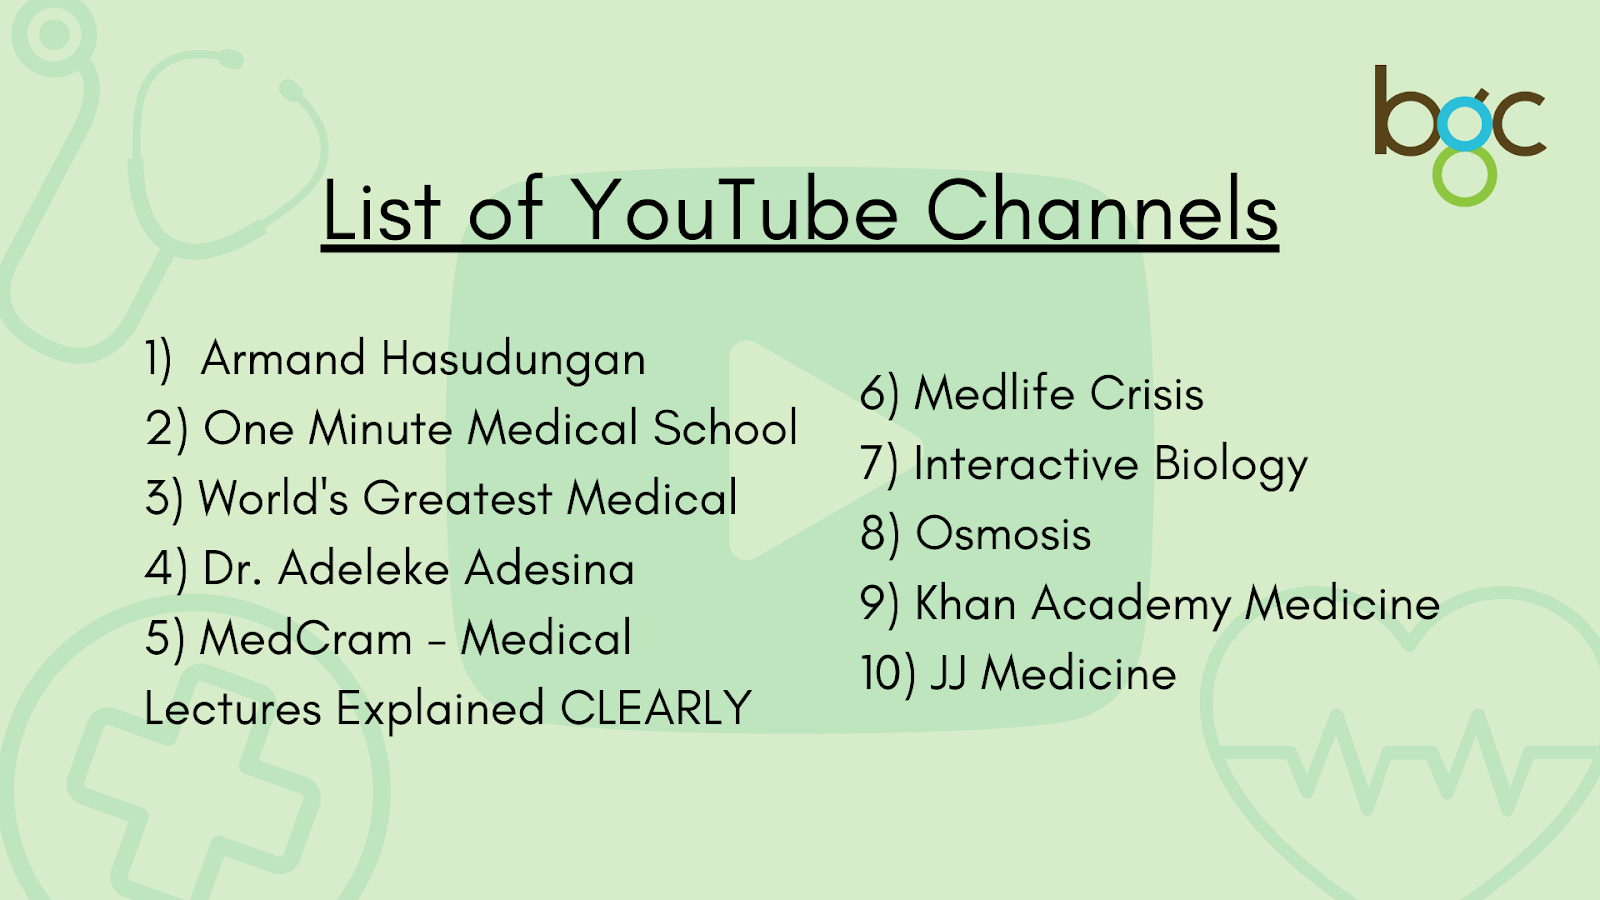 list of youtube channels.png